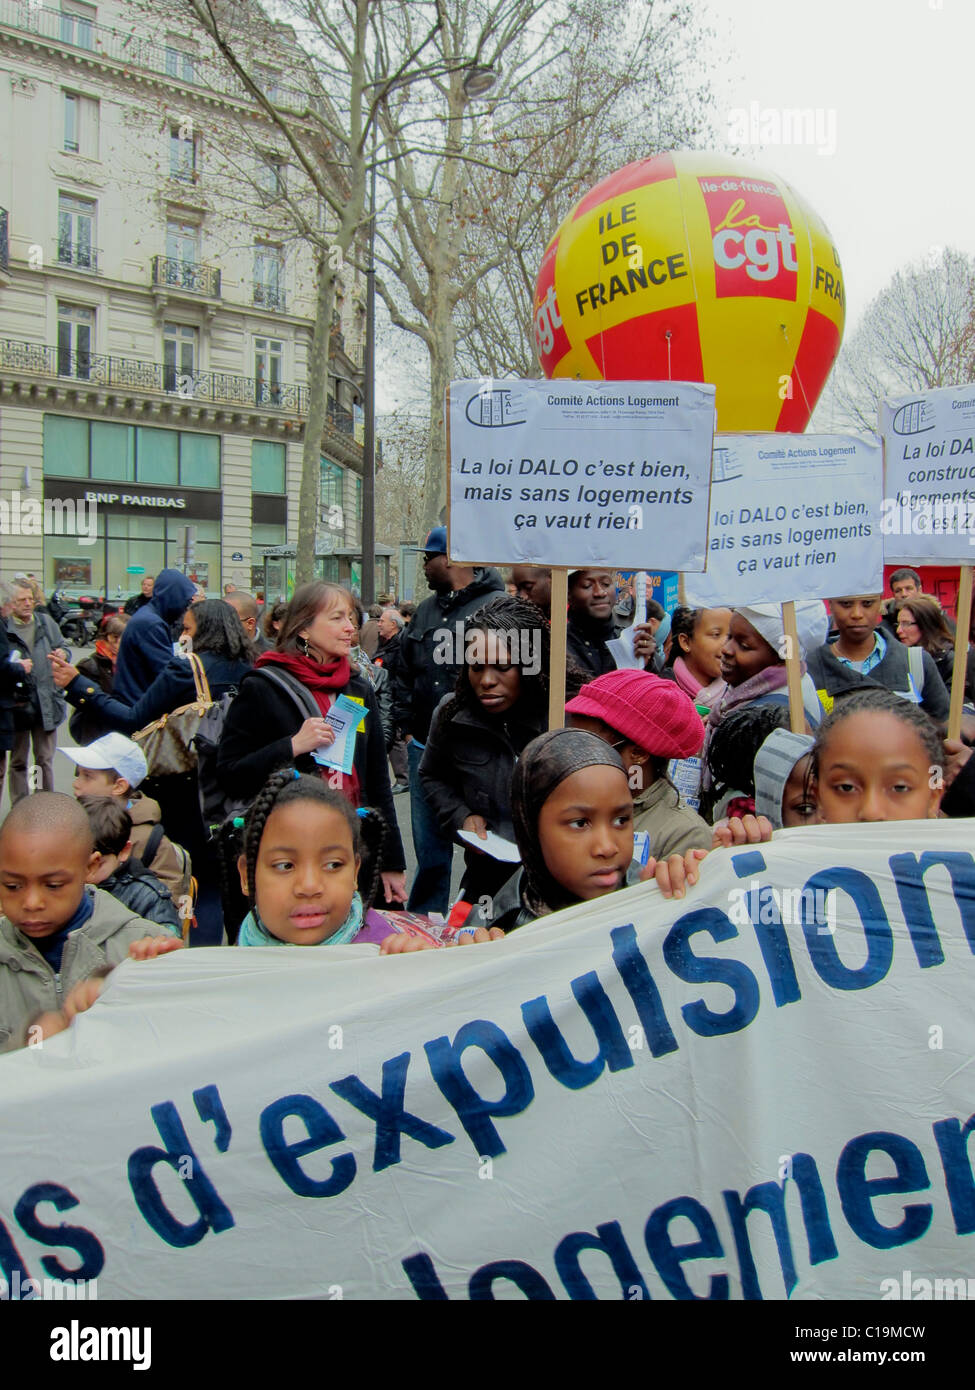 Paris, France, Crowd of African Migrants, French NGO, Street Demonstration, Protests Against Forced Housing Expulsions, - Stock Image